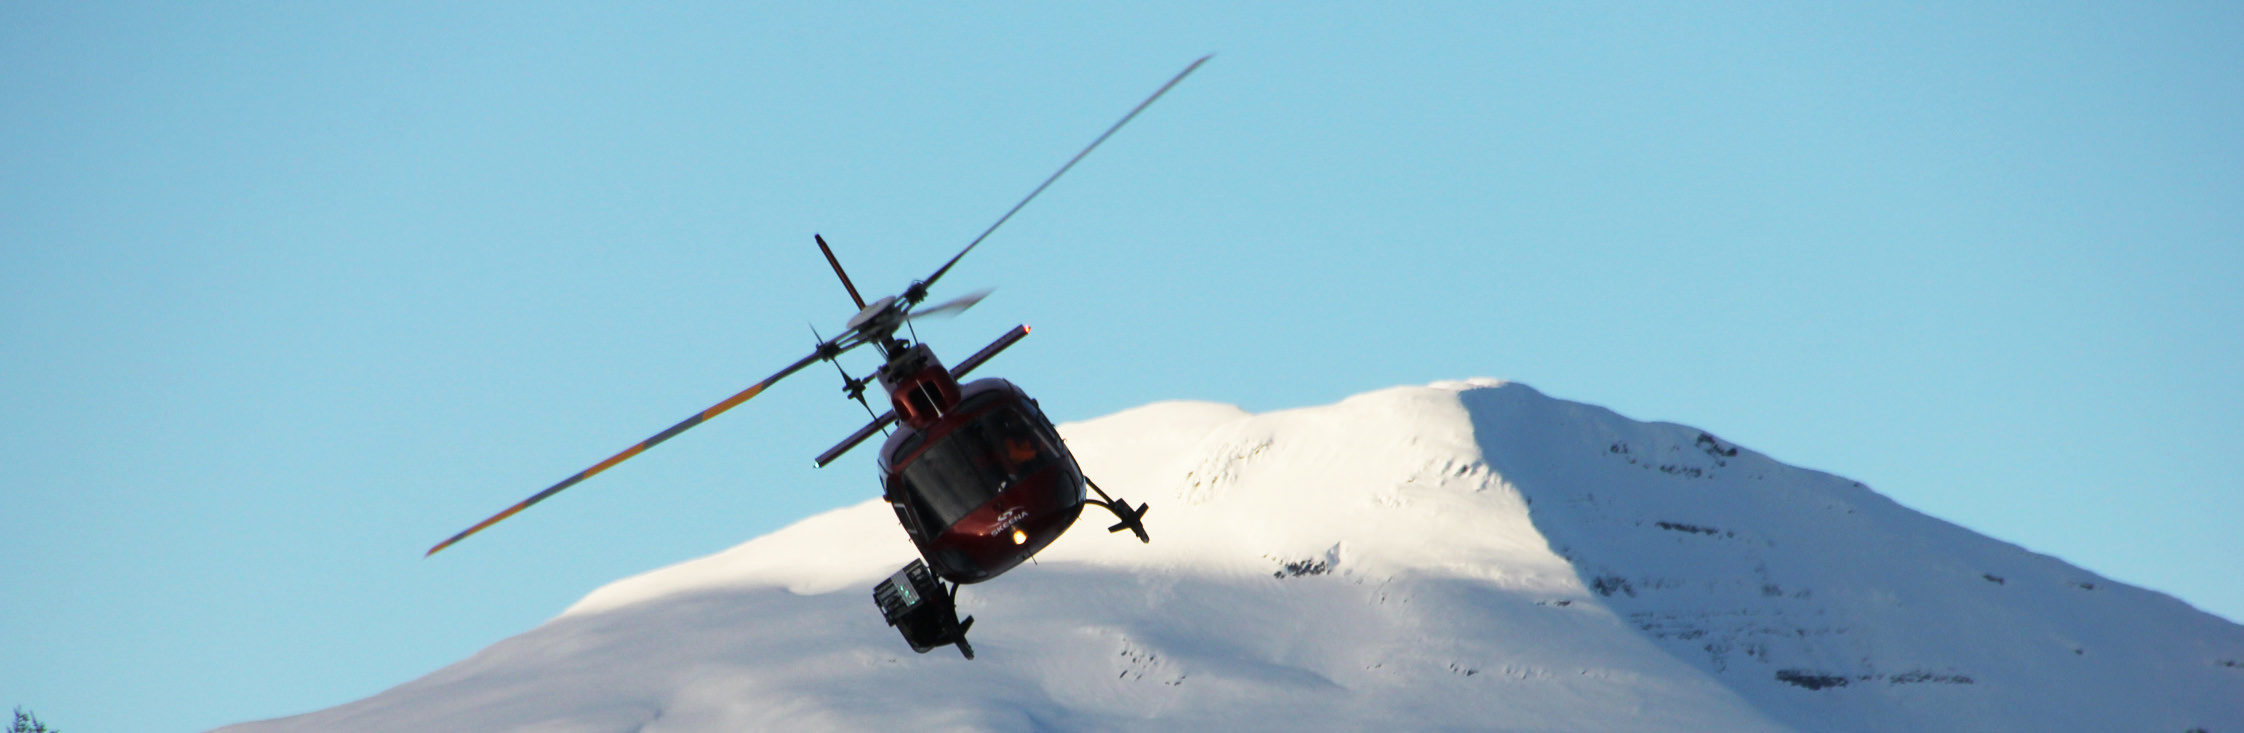 heliskiing_small_skeena-helicopter-mountains